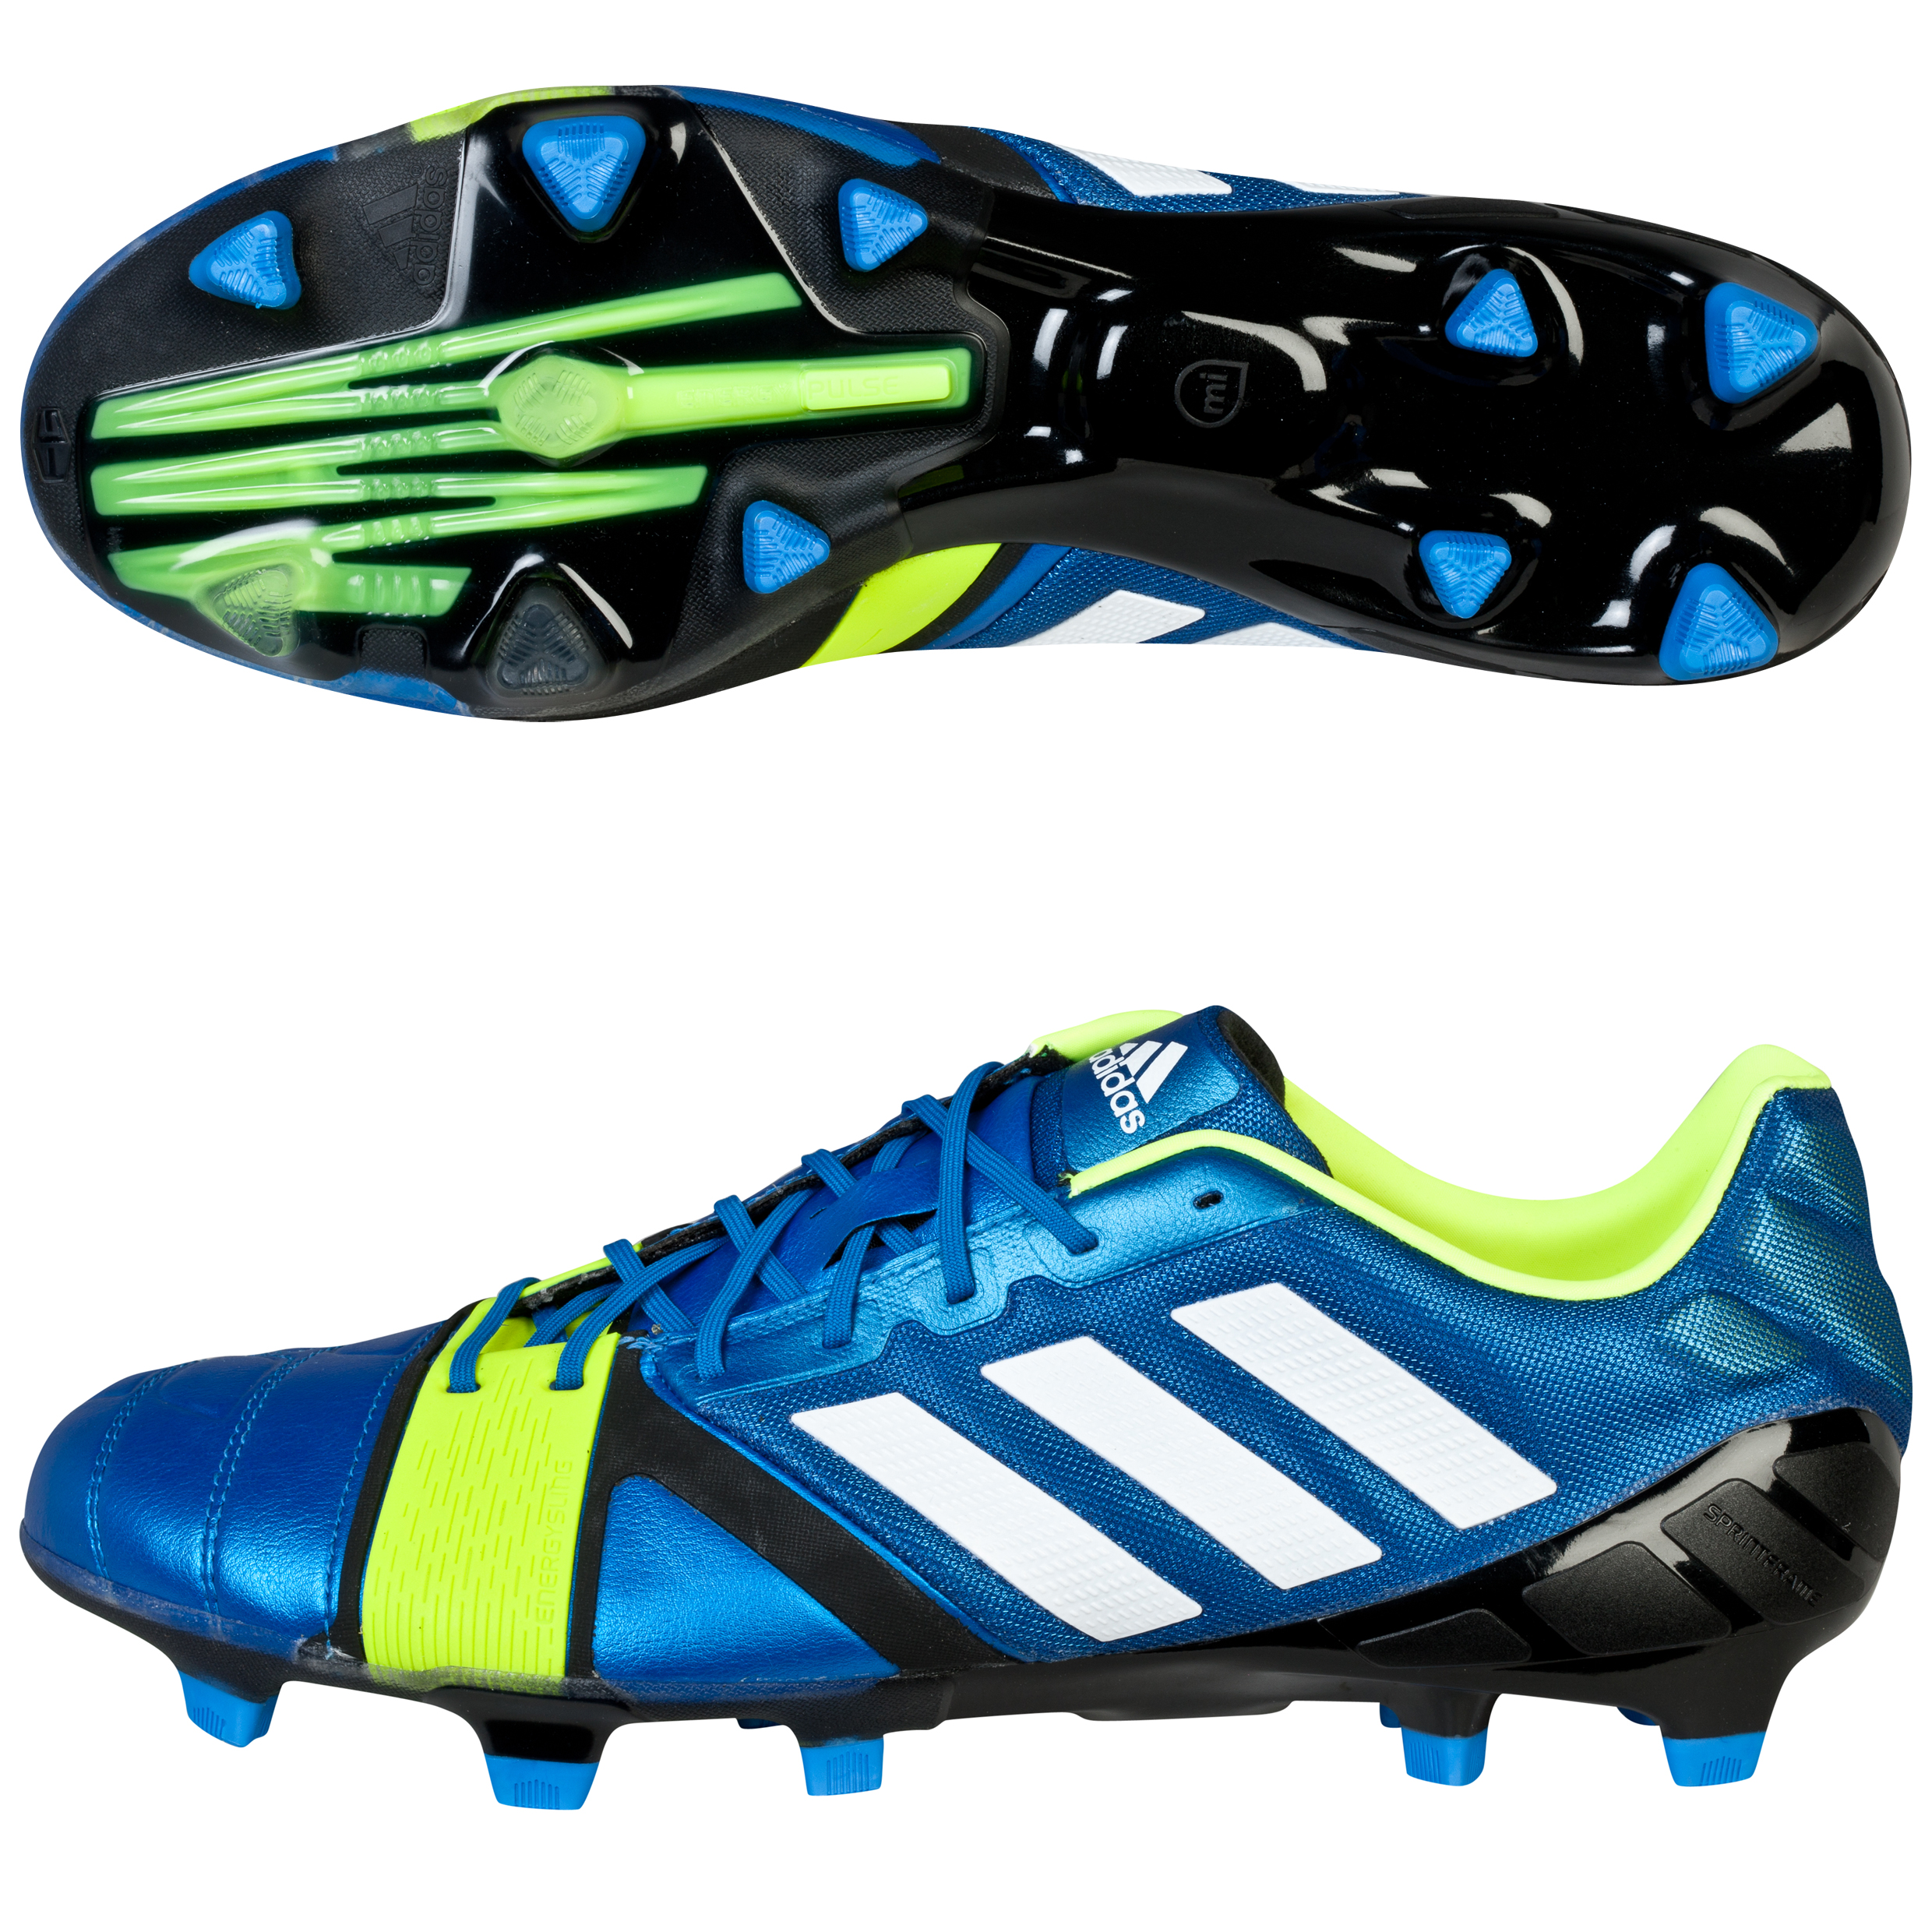 Adidas Nitrocharge 1.0 TRX Firm Ground Football Boots Blue